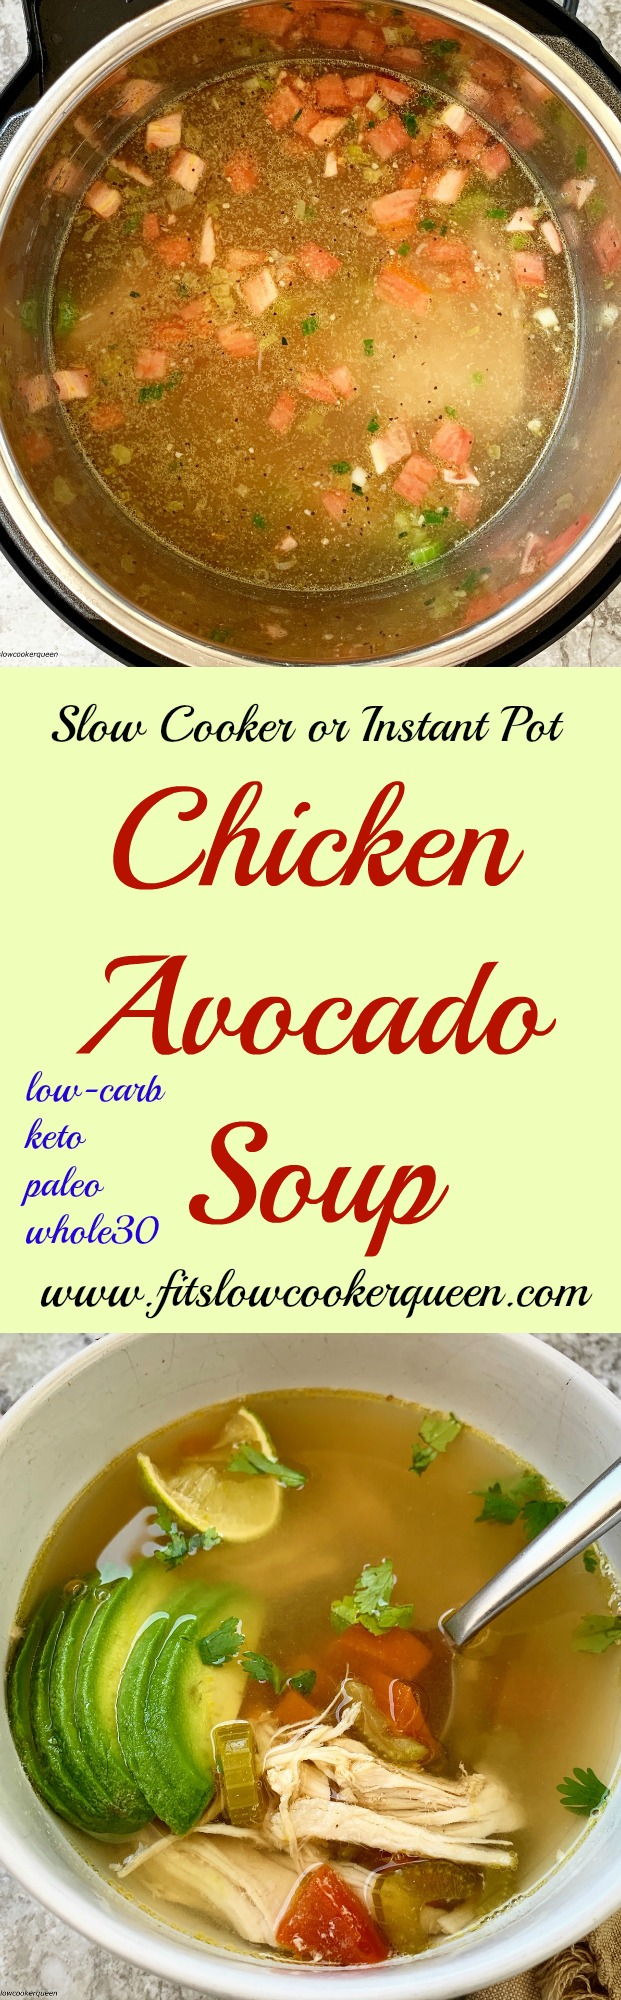 another Pinterest pin for Slow Cooker or Instant Pot Chicken Avocado Soup (Low-Carb, Paleo, Whole30)